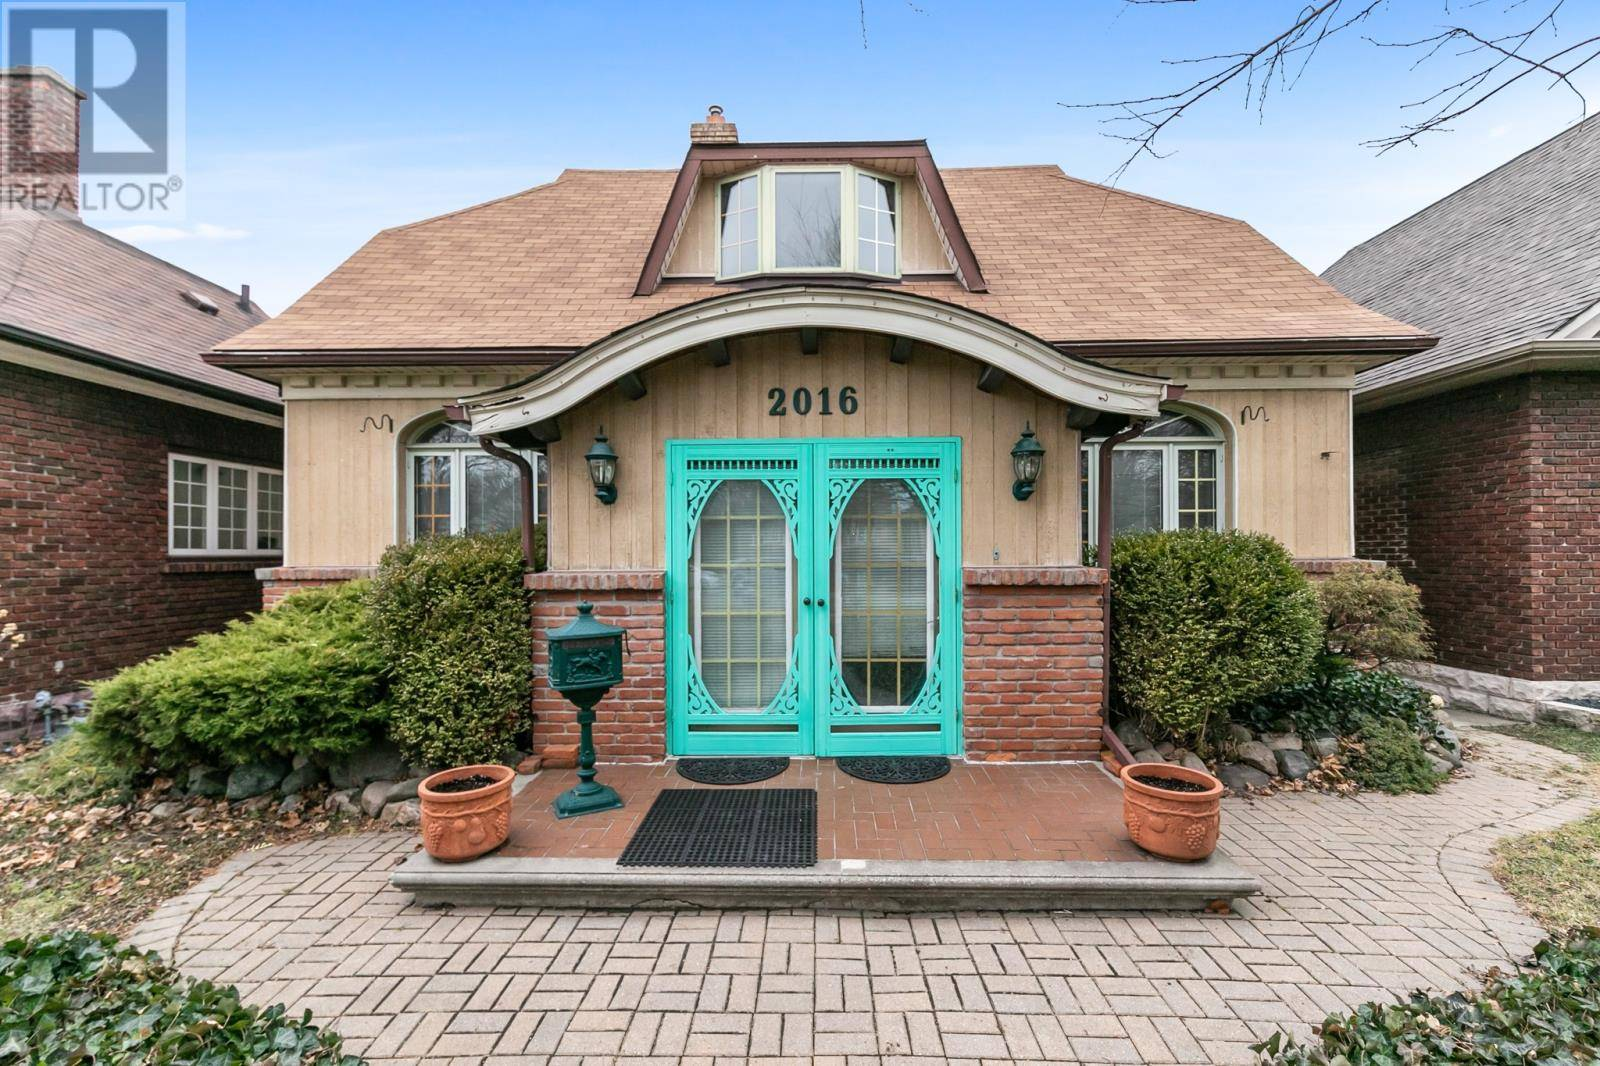 House for sale at 2016 Iroquois  Windsor Ontario - MLS: 20000560